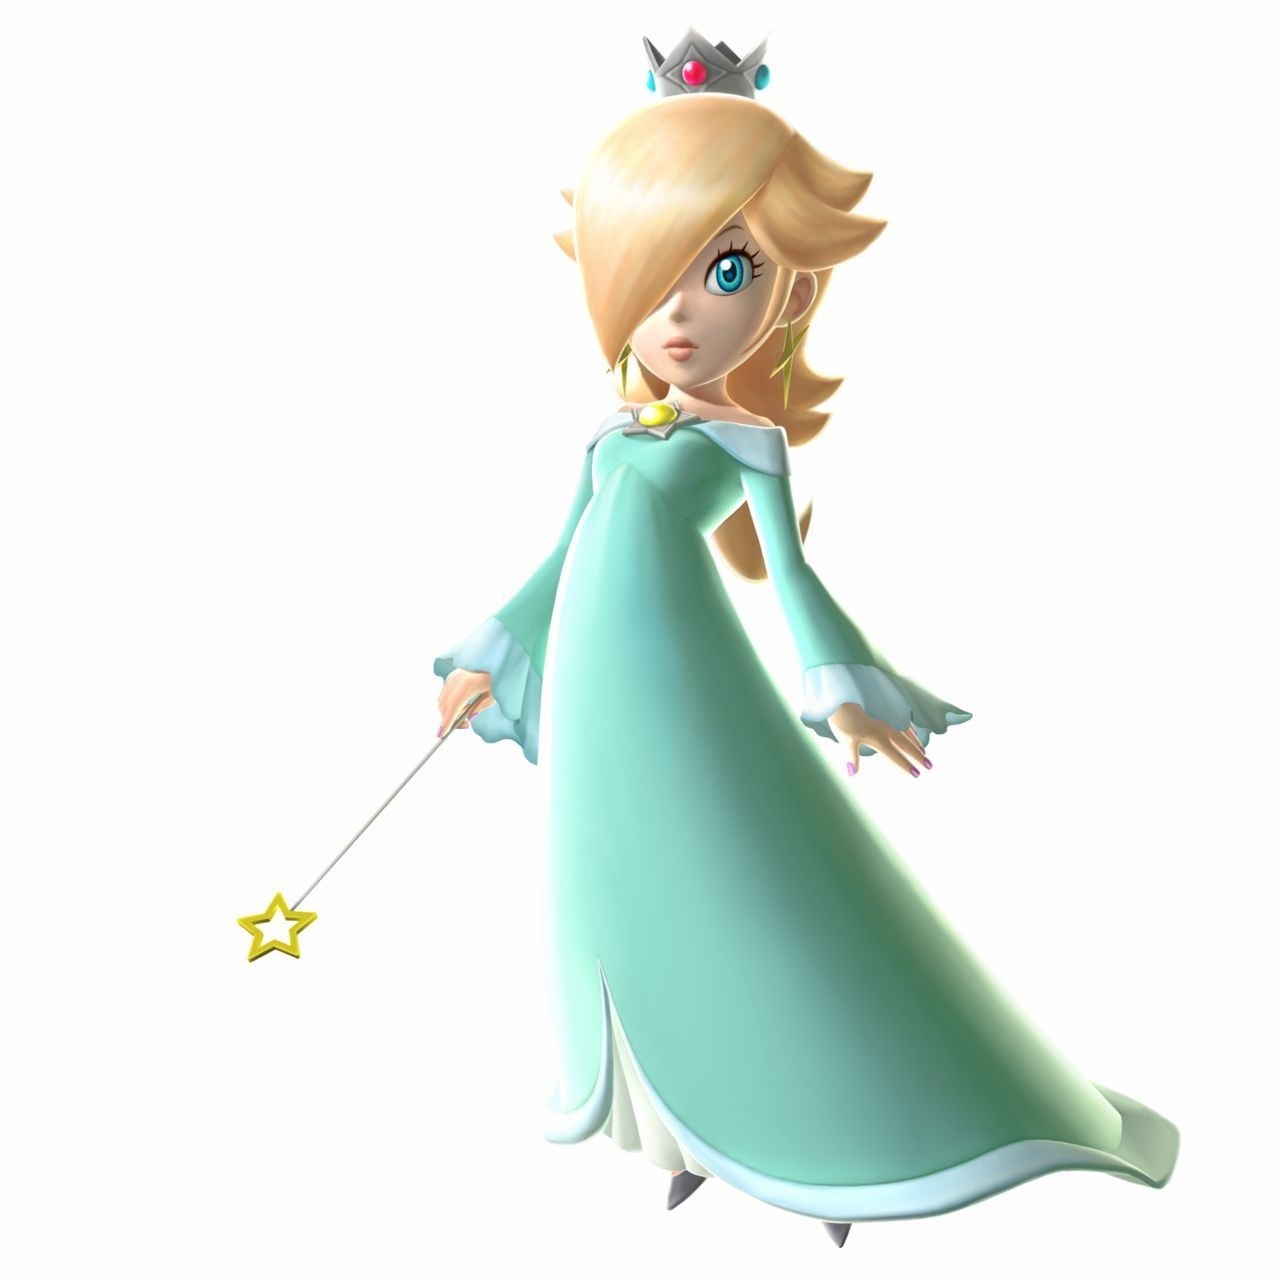 Mario-Rosalina-wallpaper-wp3608278